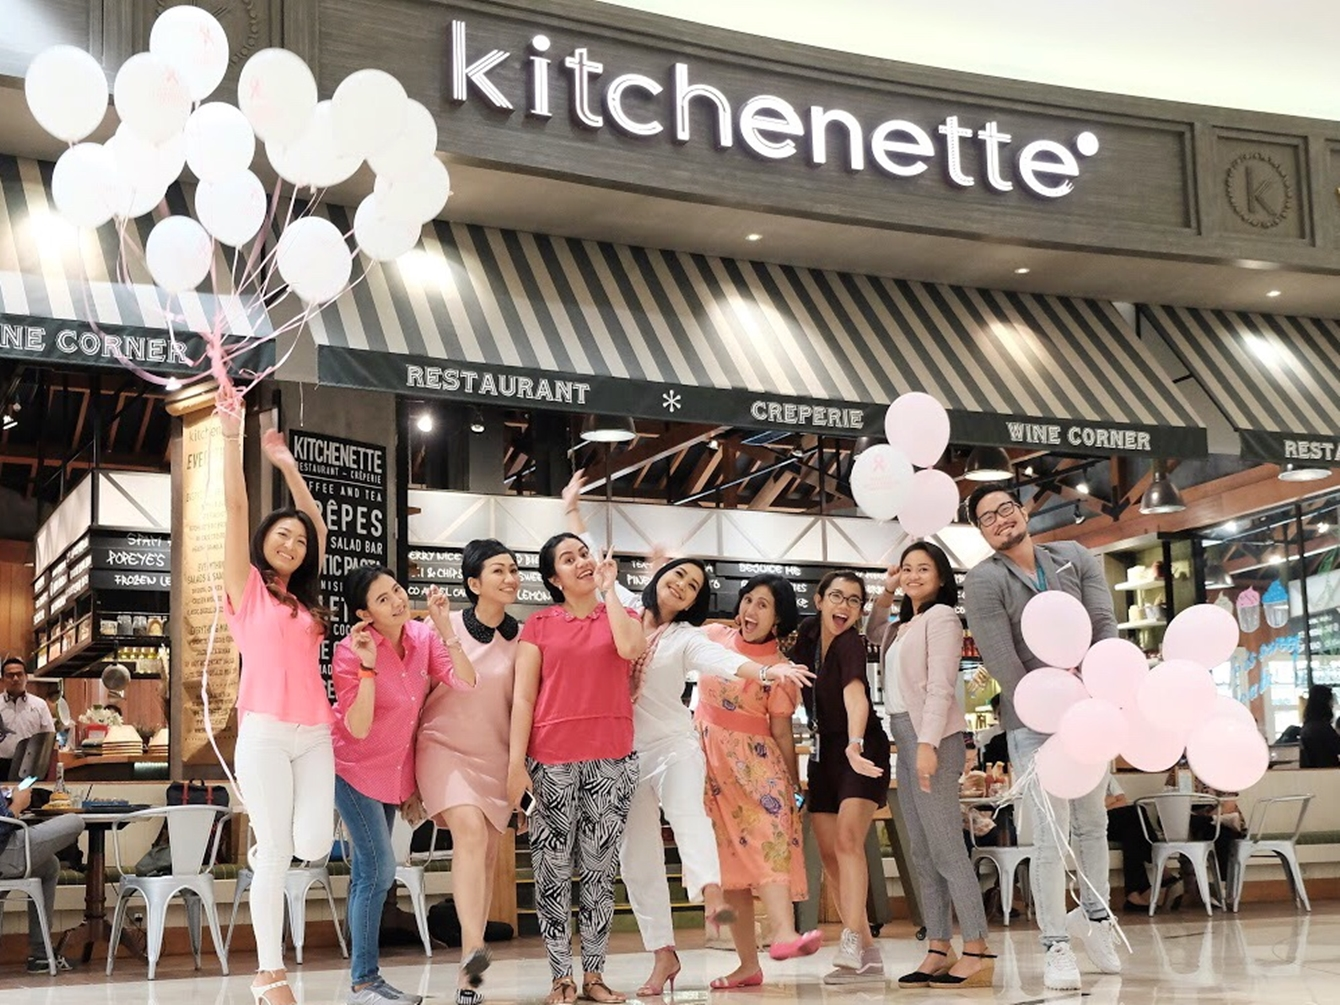 KITCHENETTE PRESENTS 'WE HEART PINK' IN COMMEMORATING BREAST CANCER AWARENESS MONTH